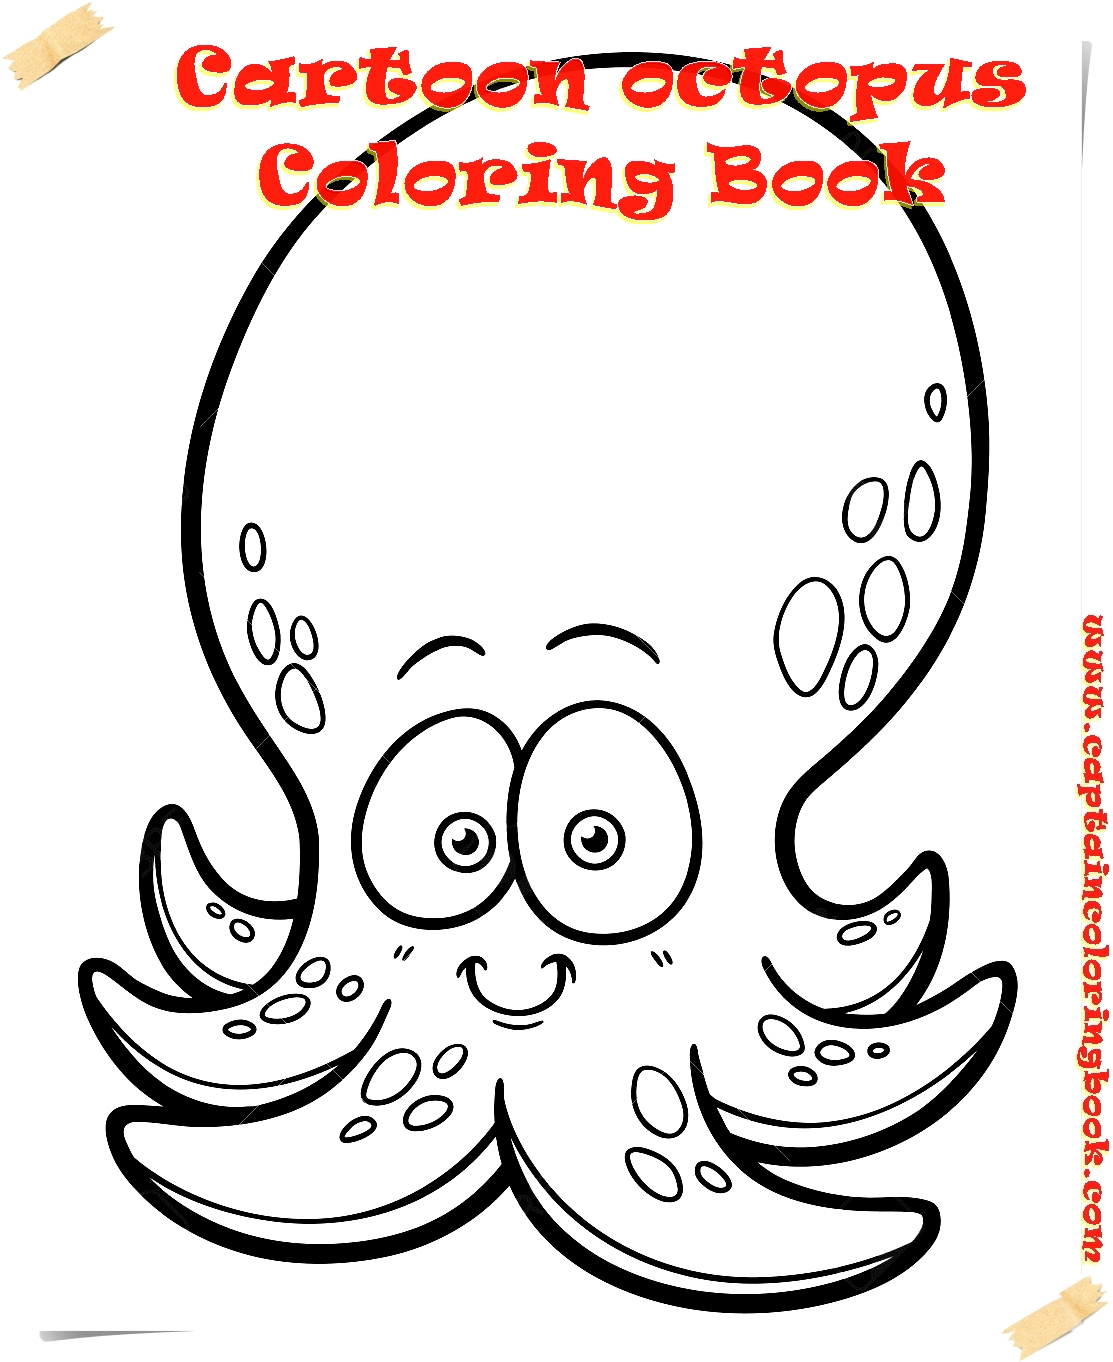 Cartoon octopus - Coloring book free printable - Coloring Page